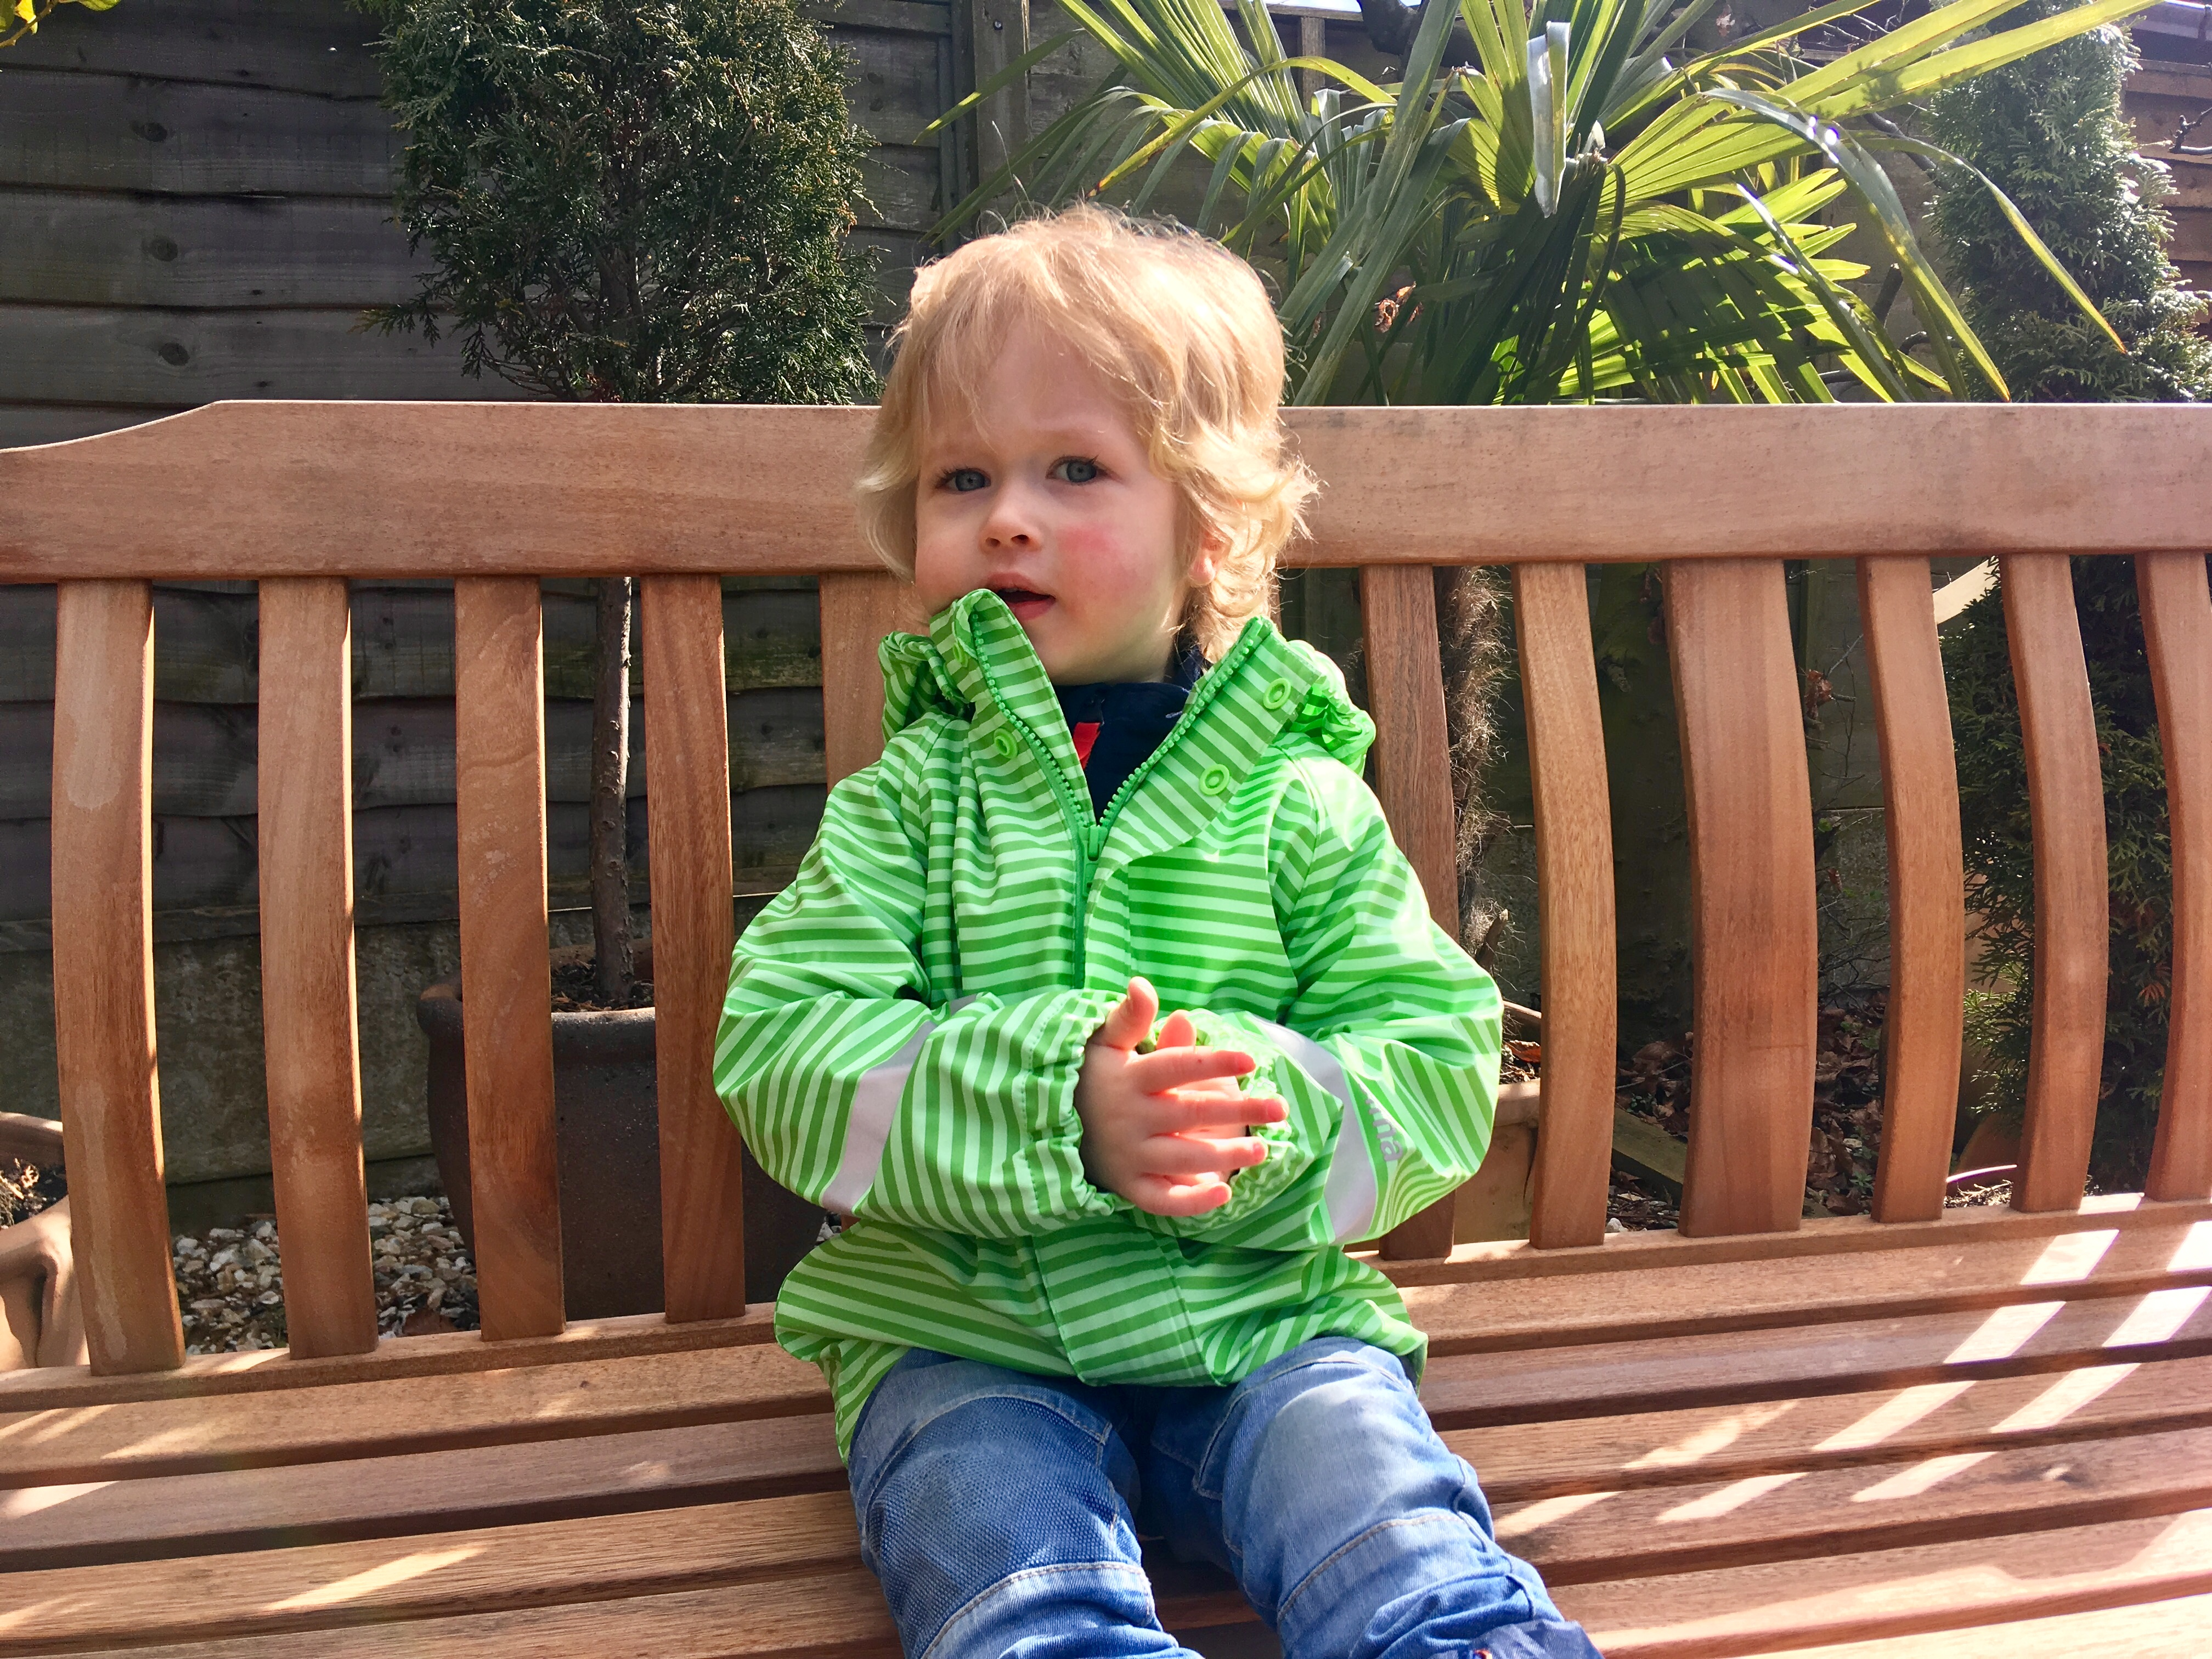 Reima jackets. Lucas is sat on a wooden bench in the garden. He is wearing a waterproof green stript jacket and blue jeans. He is looking slightly to the side and has blonde hair